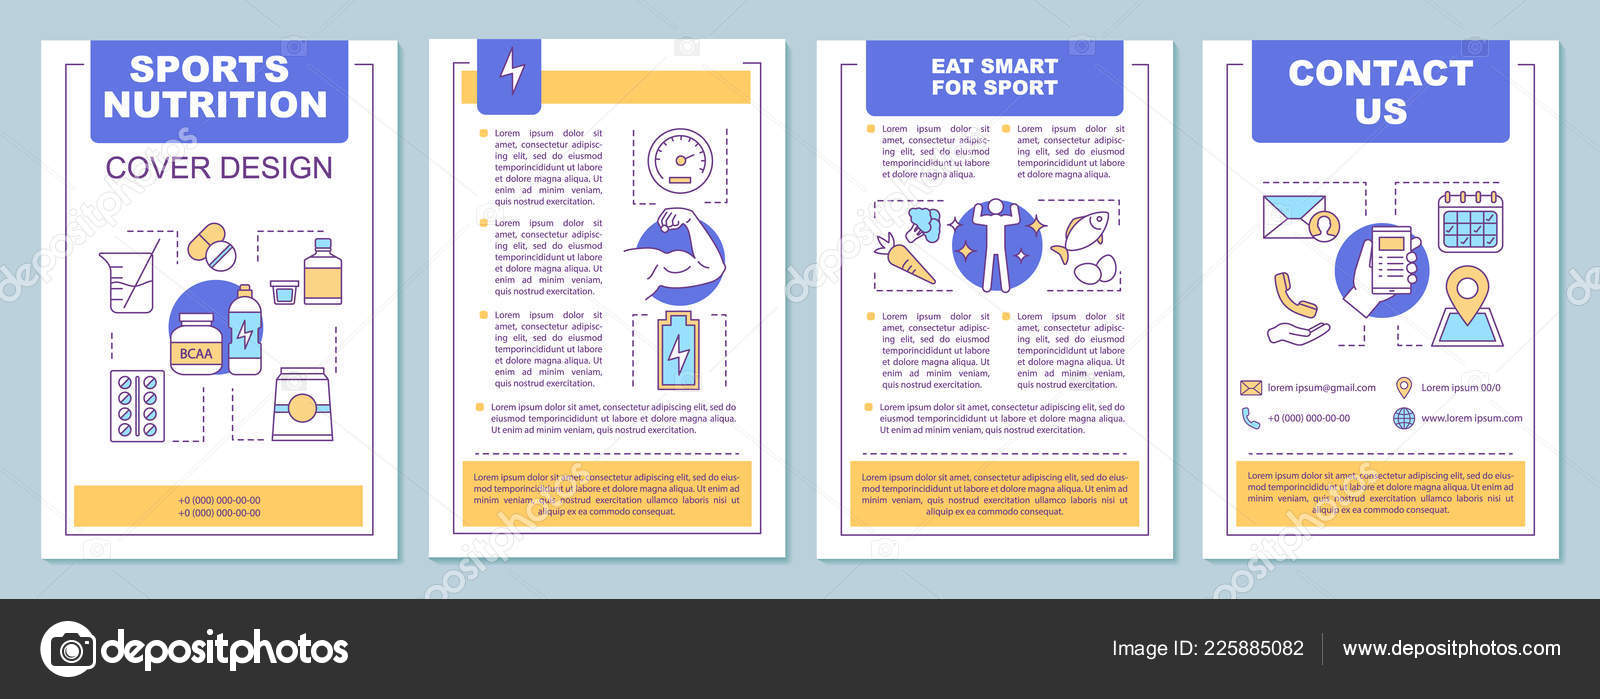 sports nutrition brochure template layout bcaa proteins vitamins